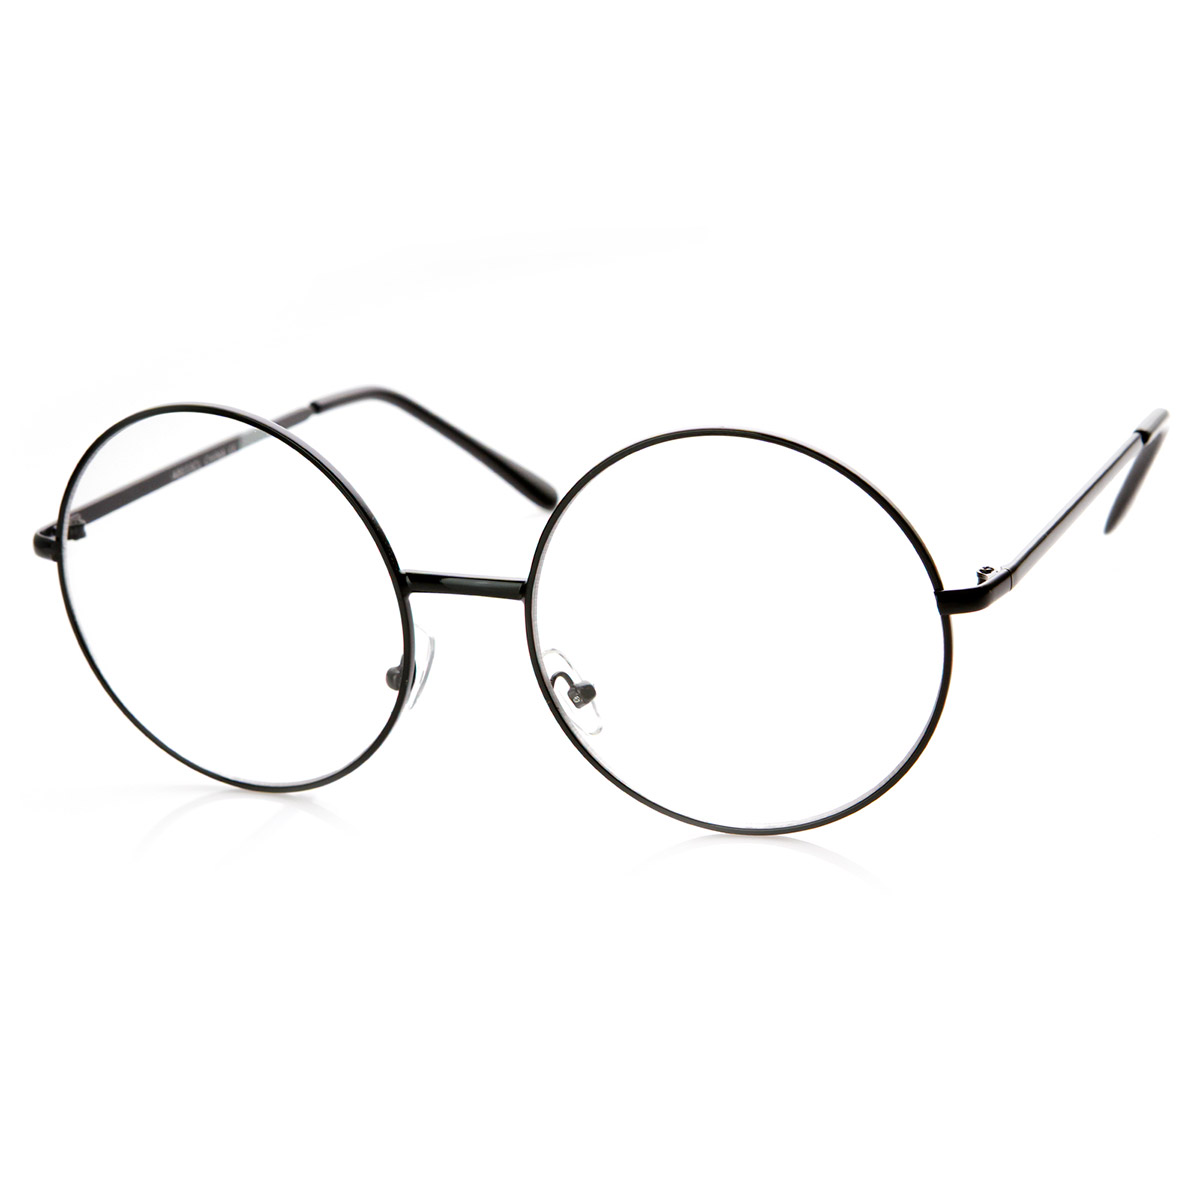 Round Glasses No Frame : Large Oversized Metal Frame Clear Lens Round Circle Eye ...